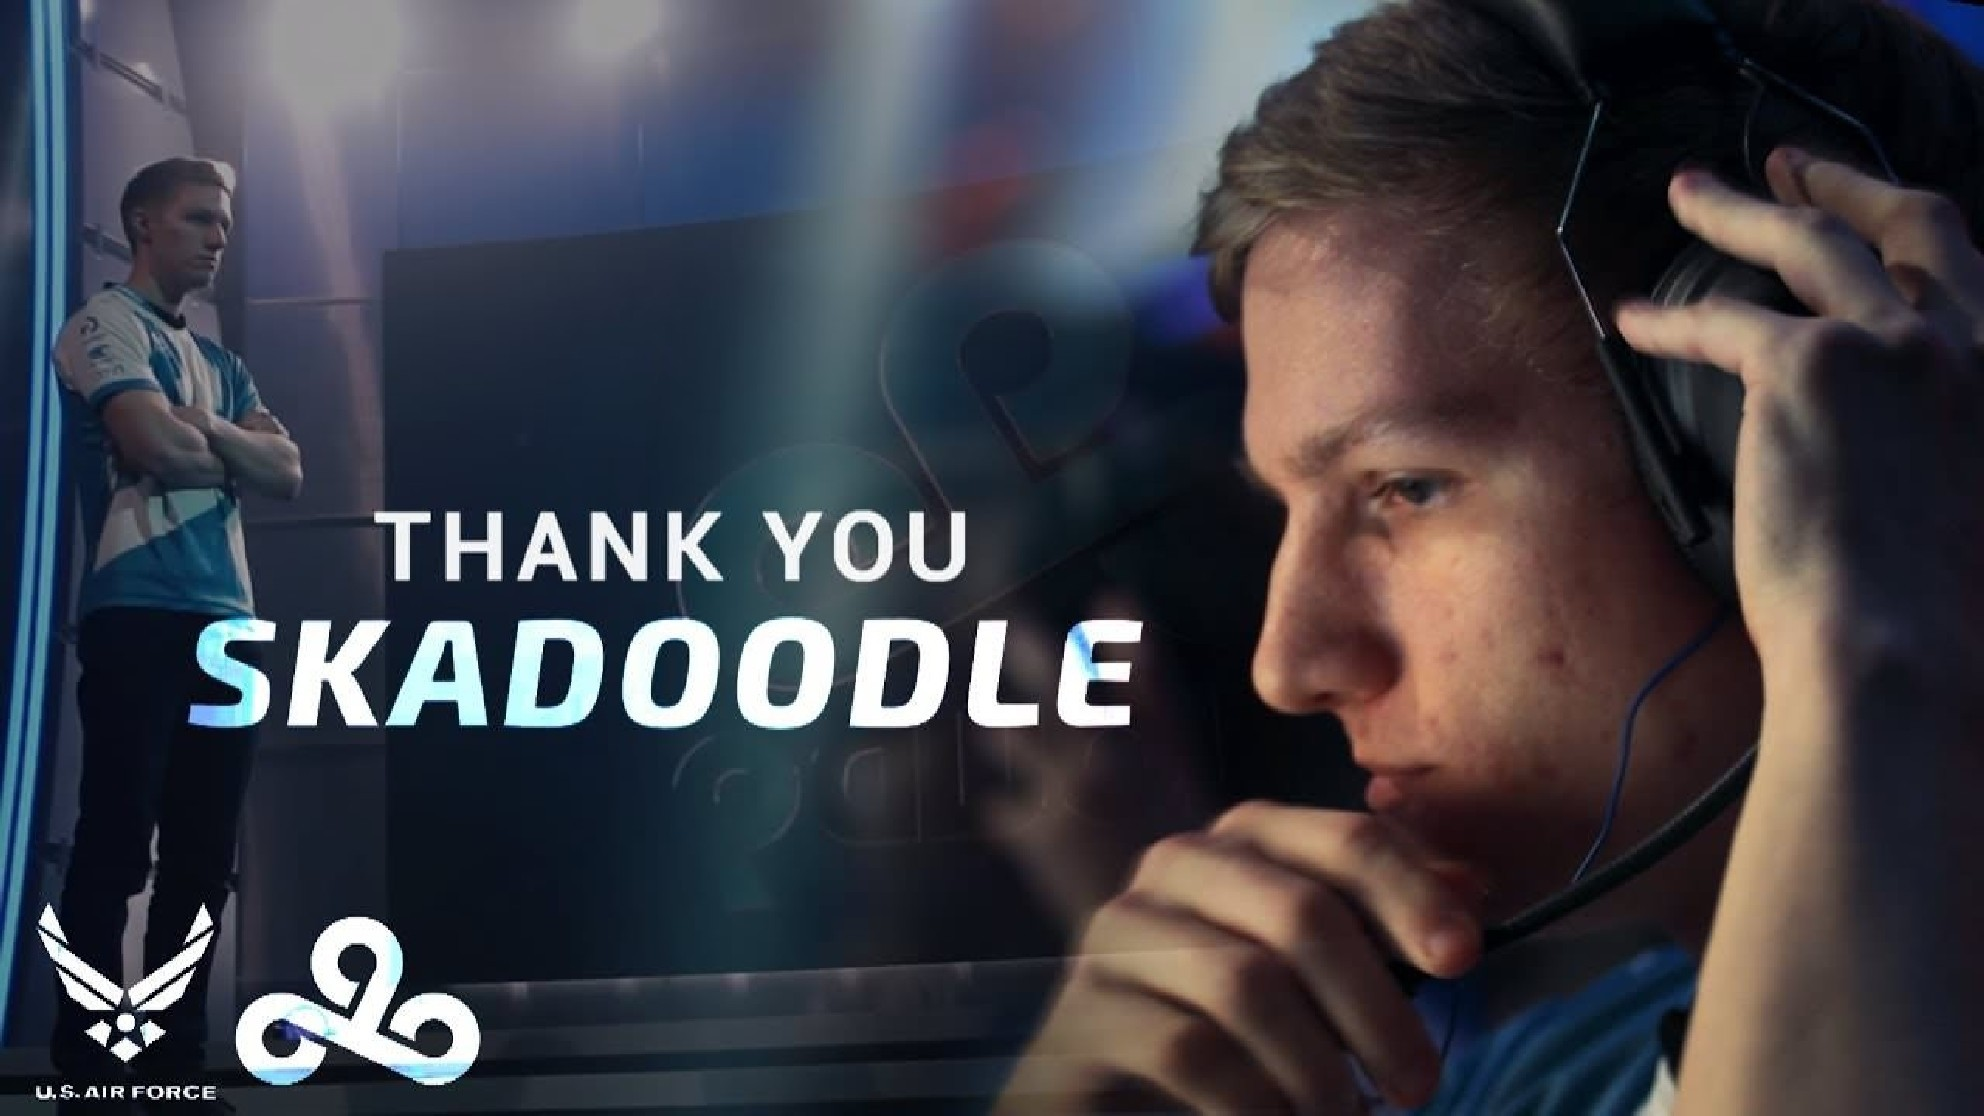 Skadoodle taking a break from the competitive scene